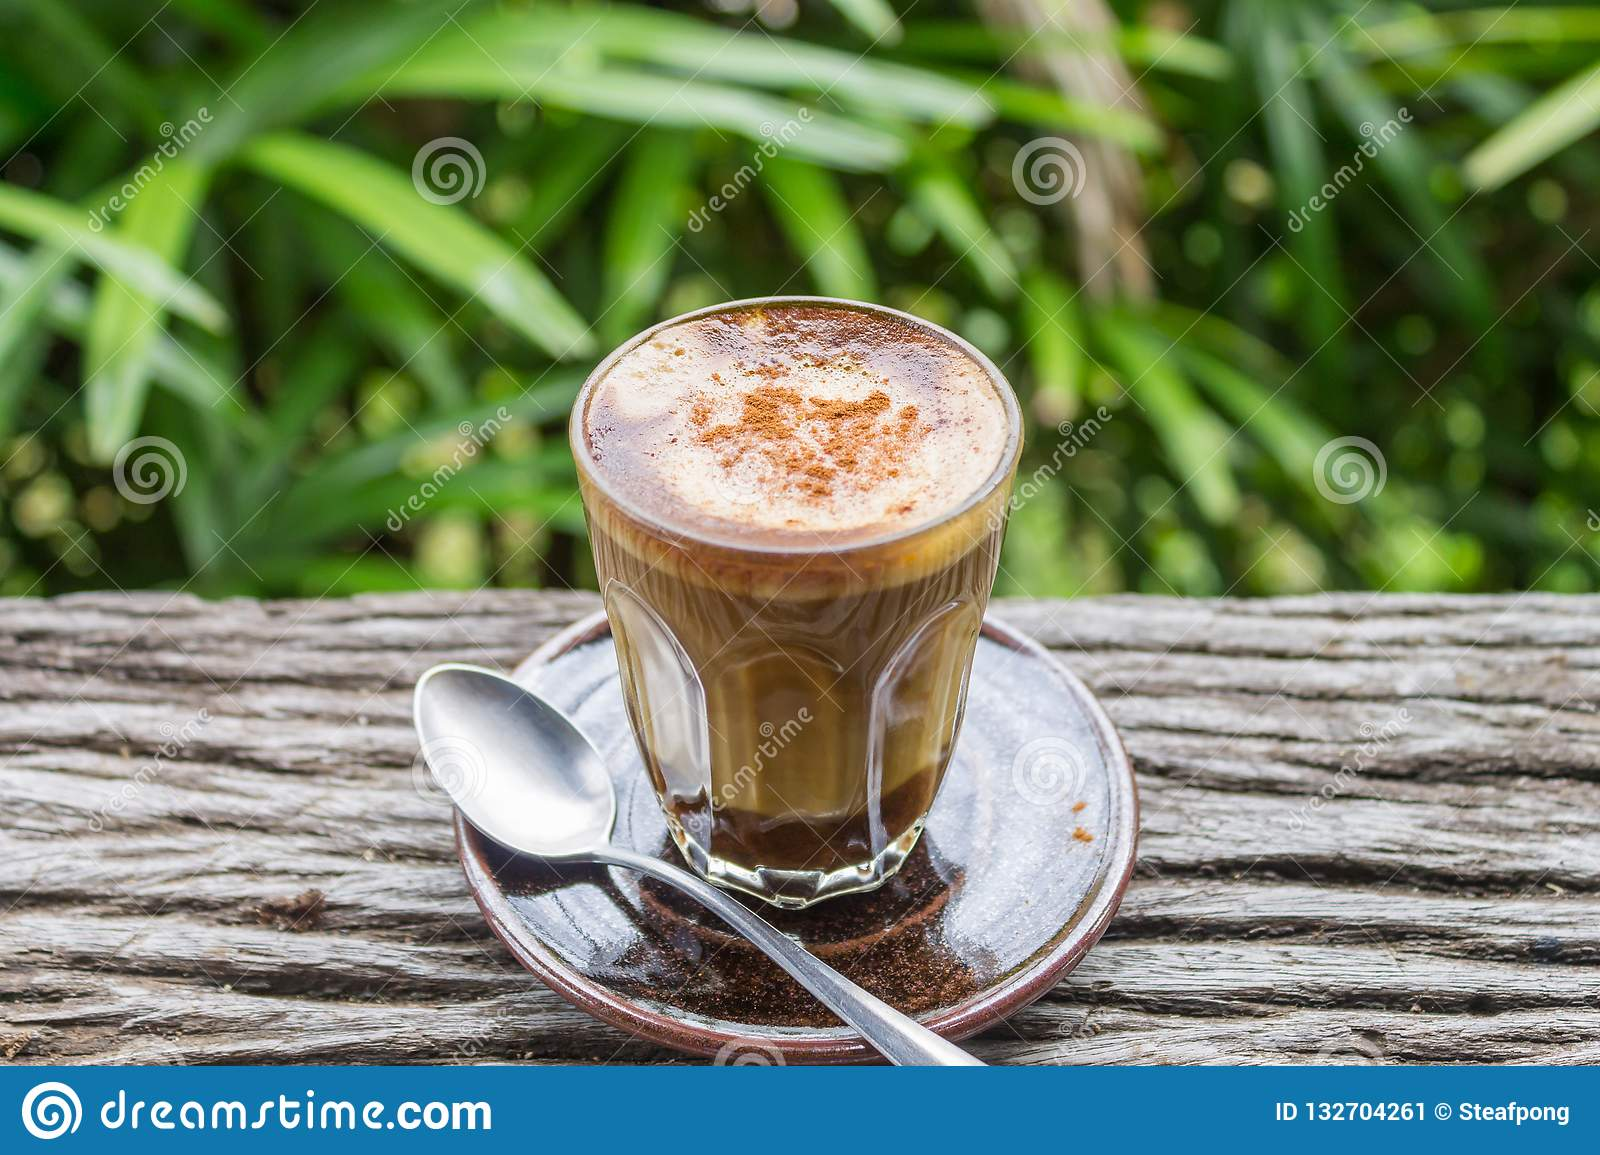 Astonishing Latte Coffee In Glass With Spoon On Wood Table On Natural Download Free Architecture Designs Scobabritishbridgeorg